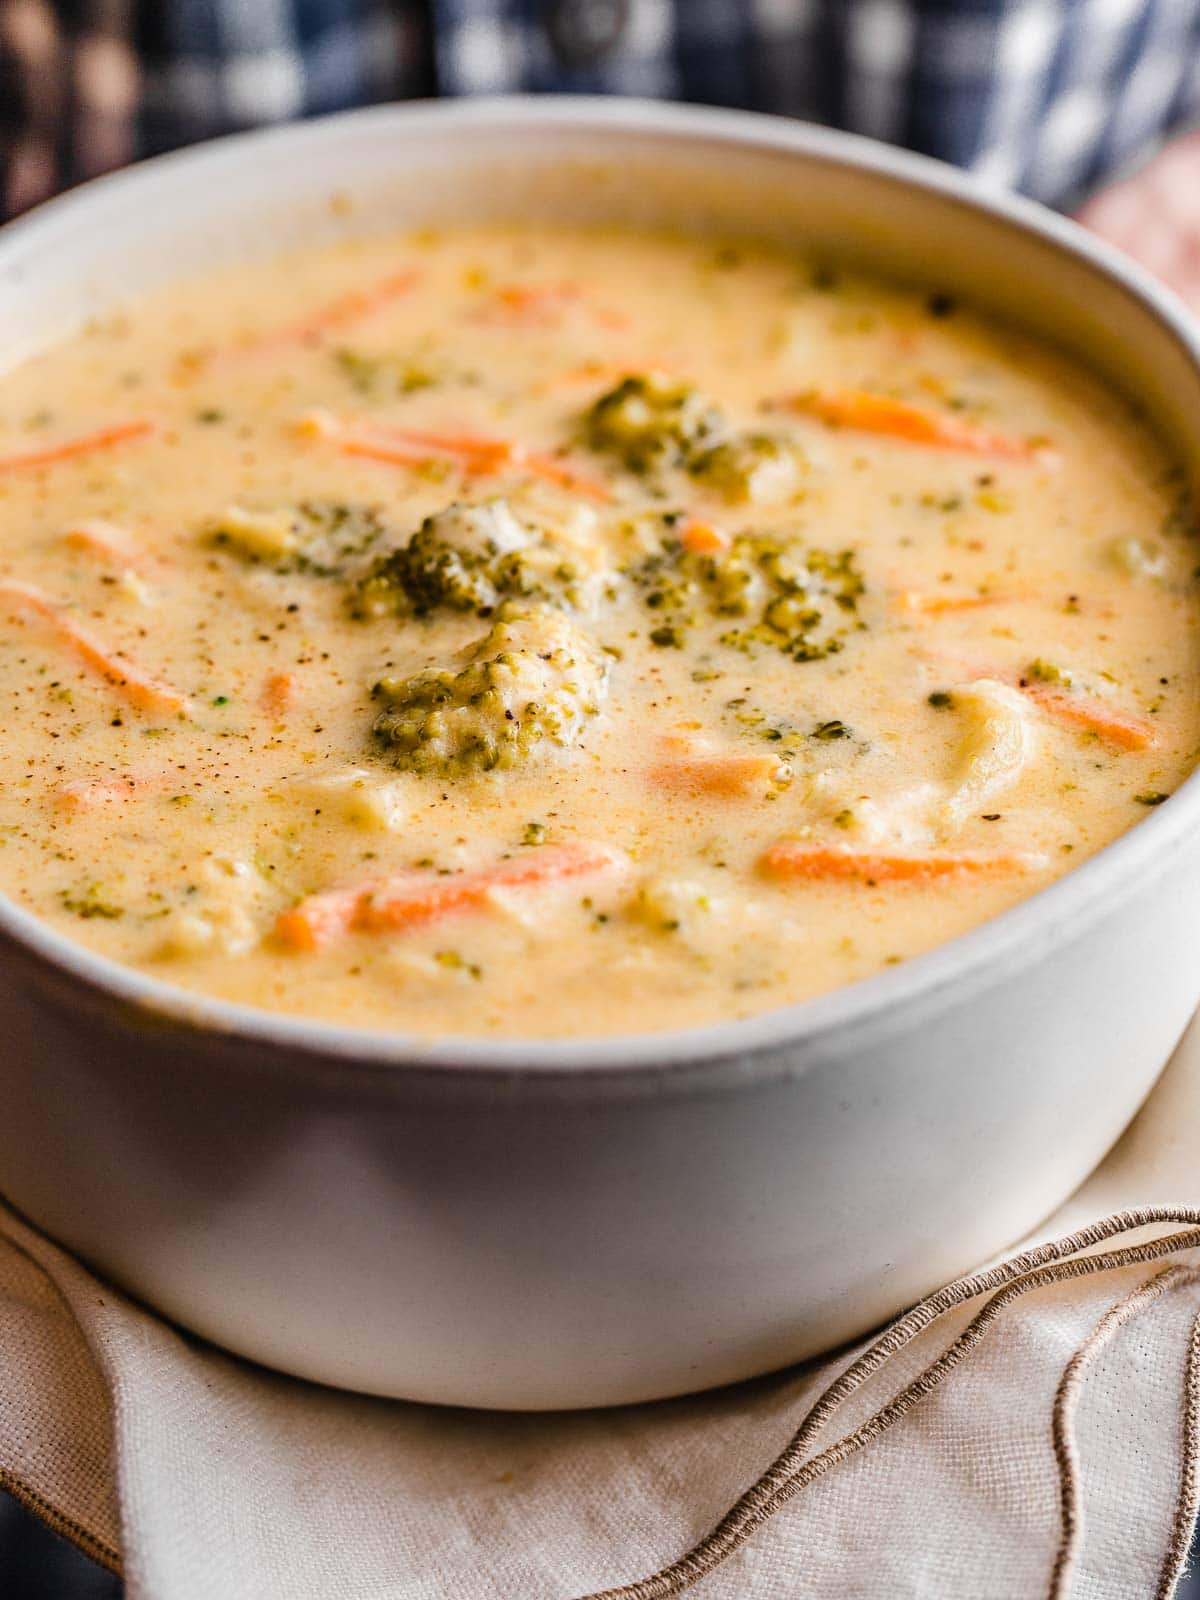 A woman holding a bowl of broccoli cheese soup.